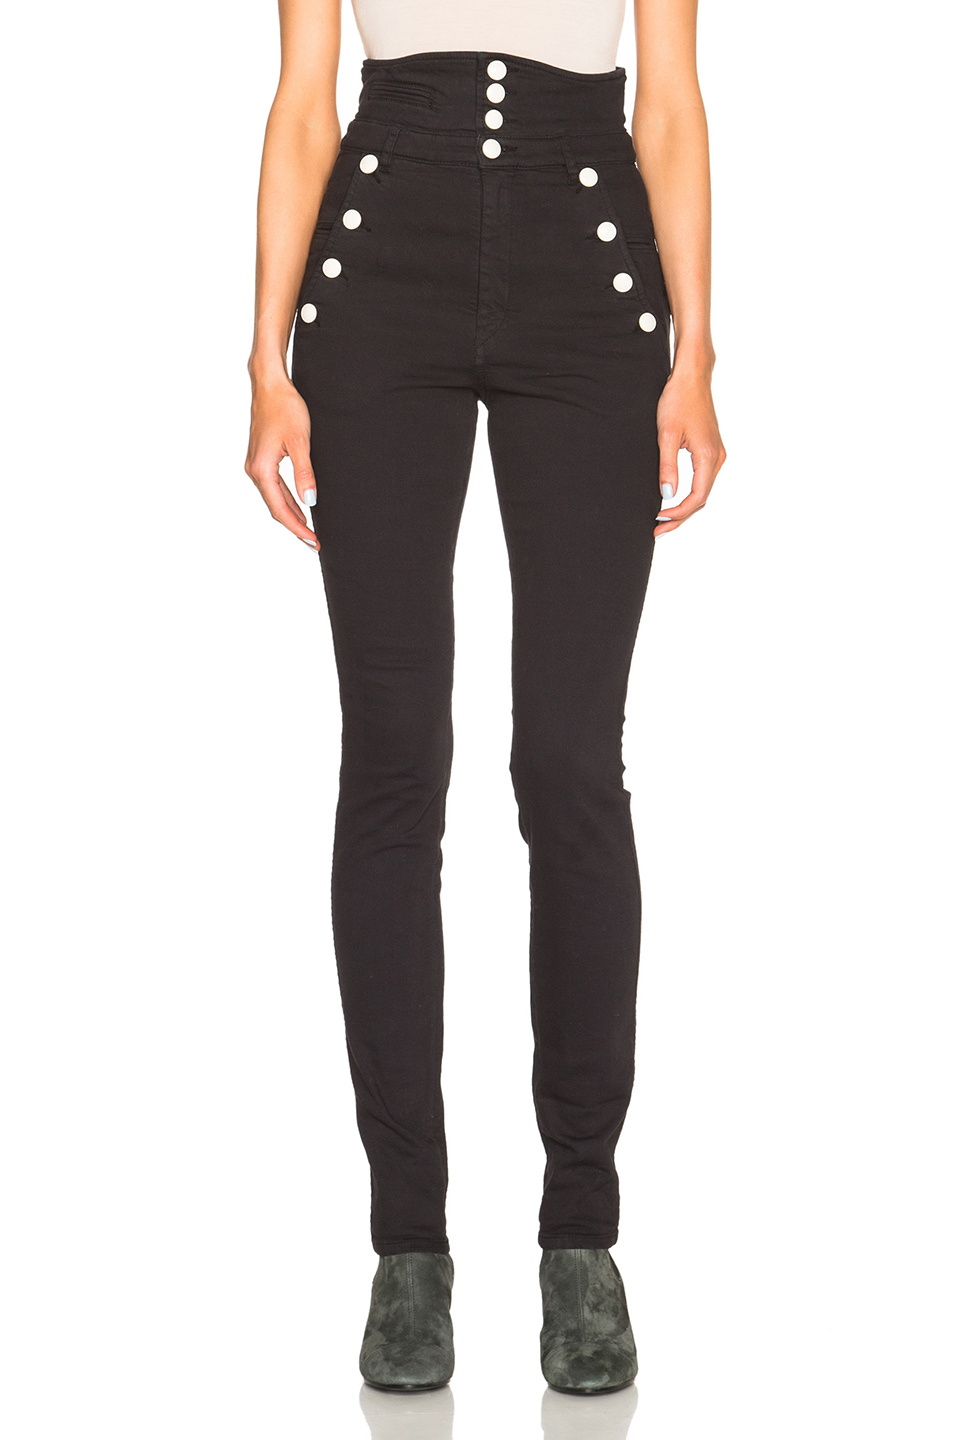 Deals Sale Online Isabel Marant High-Rise Pants For Sale Cheap Price From China Choice Online 2018 Cheap Price 45mIWJoc3